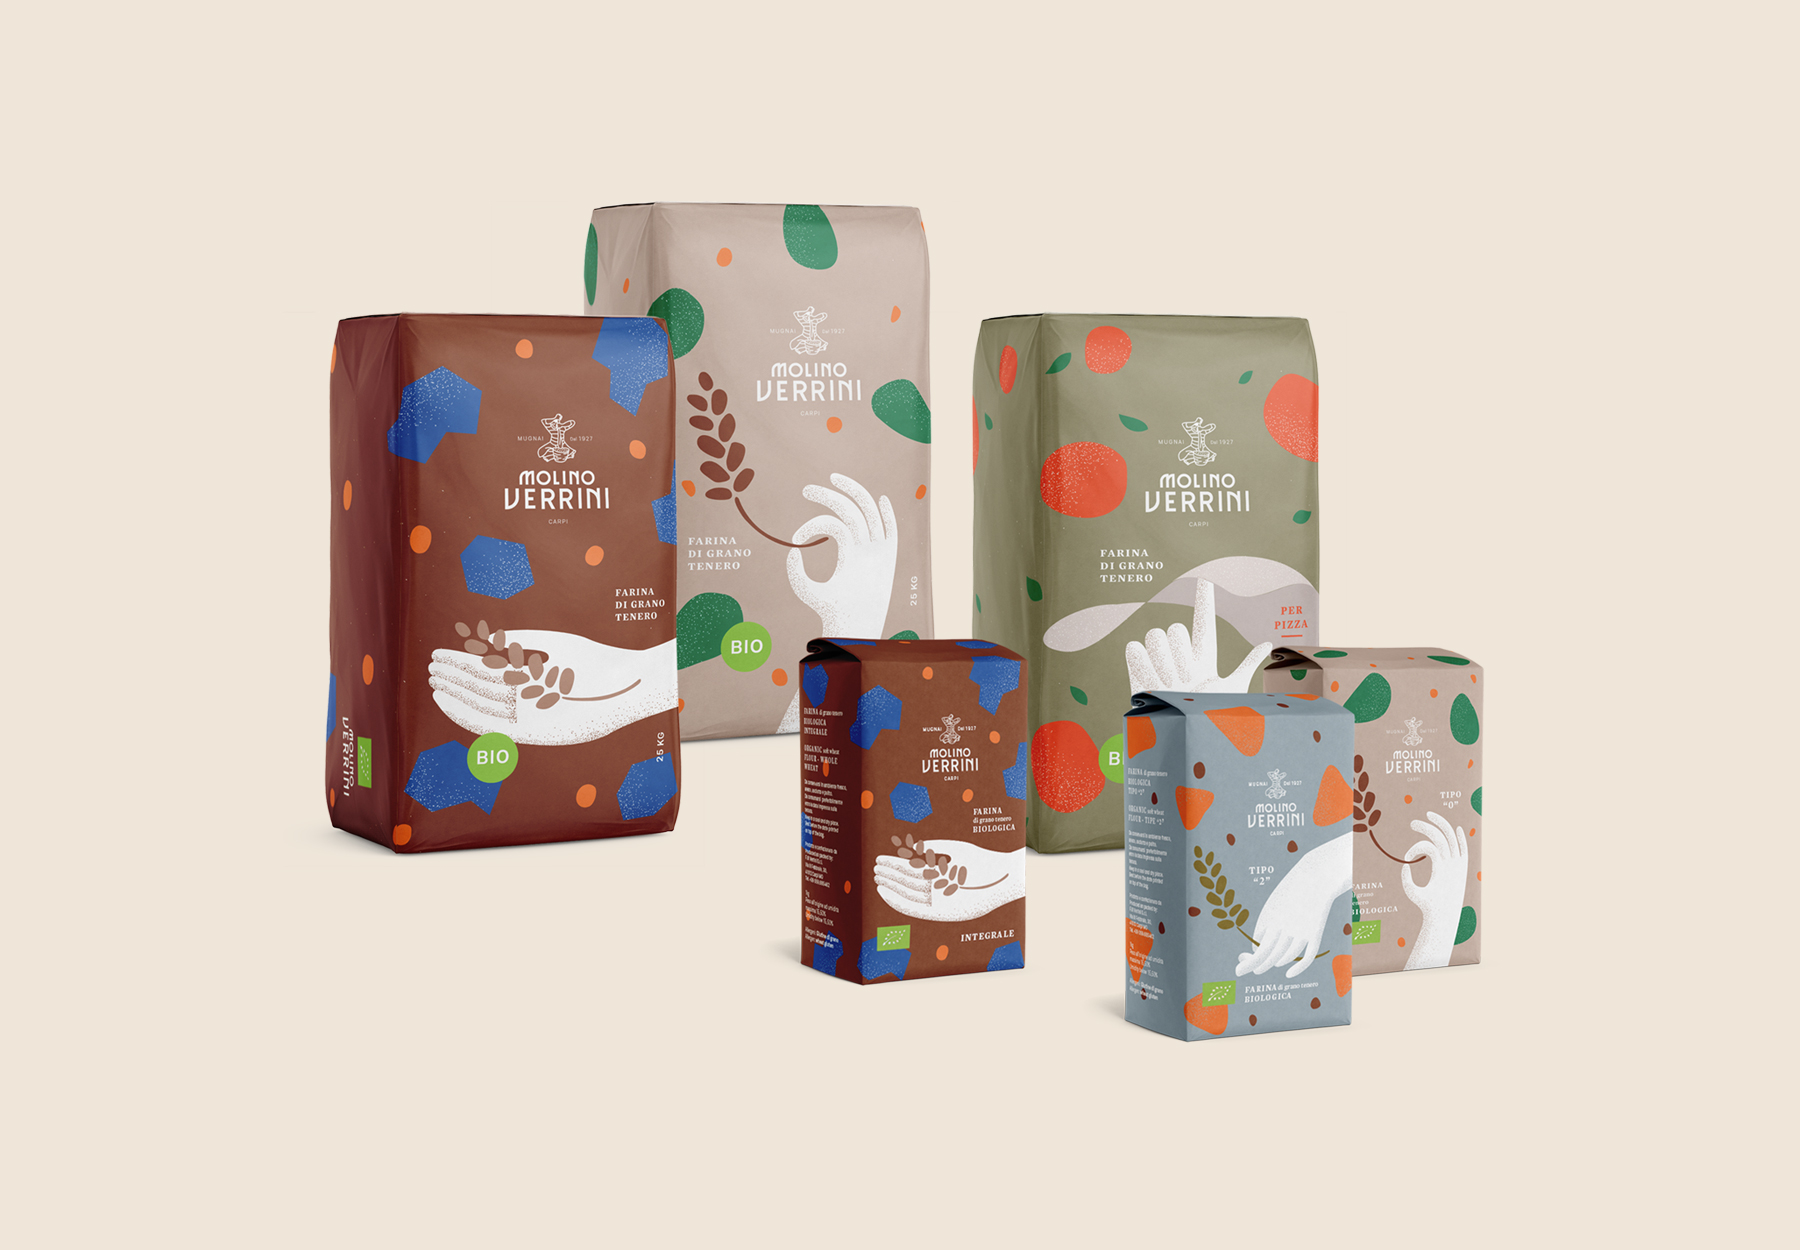 Packaging Design for Molino Verrini Organic Flous by Dry Studio